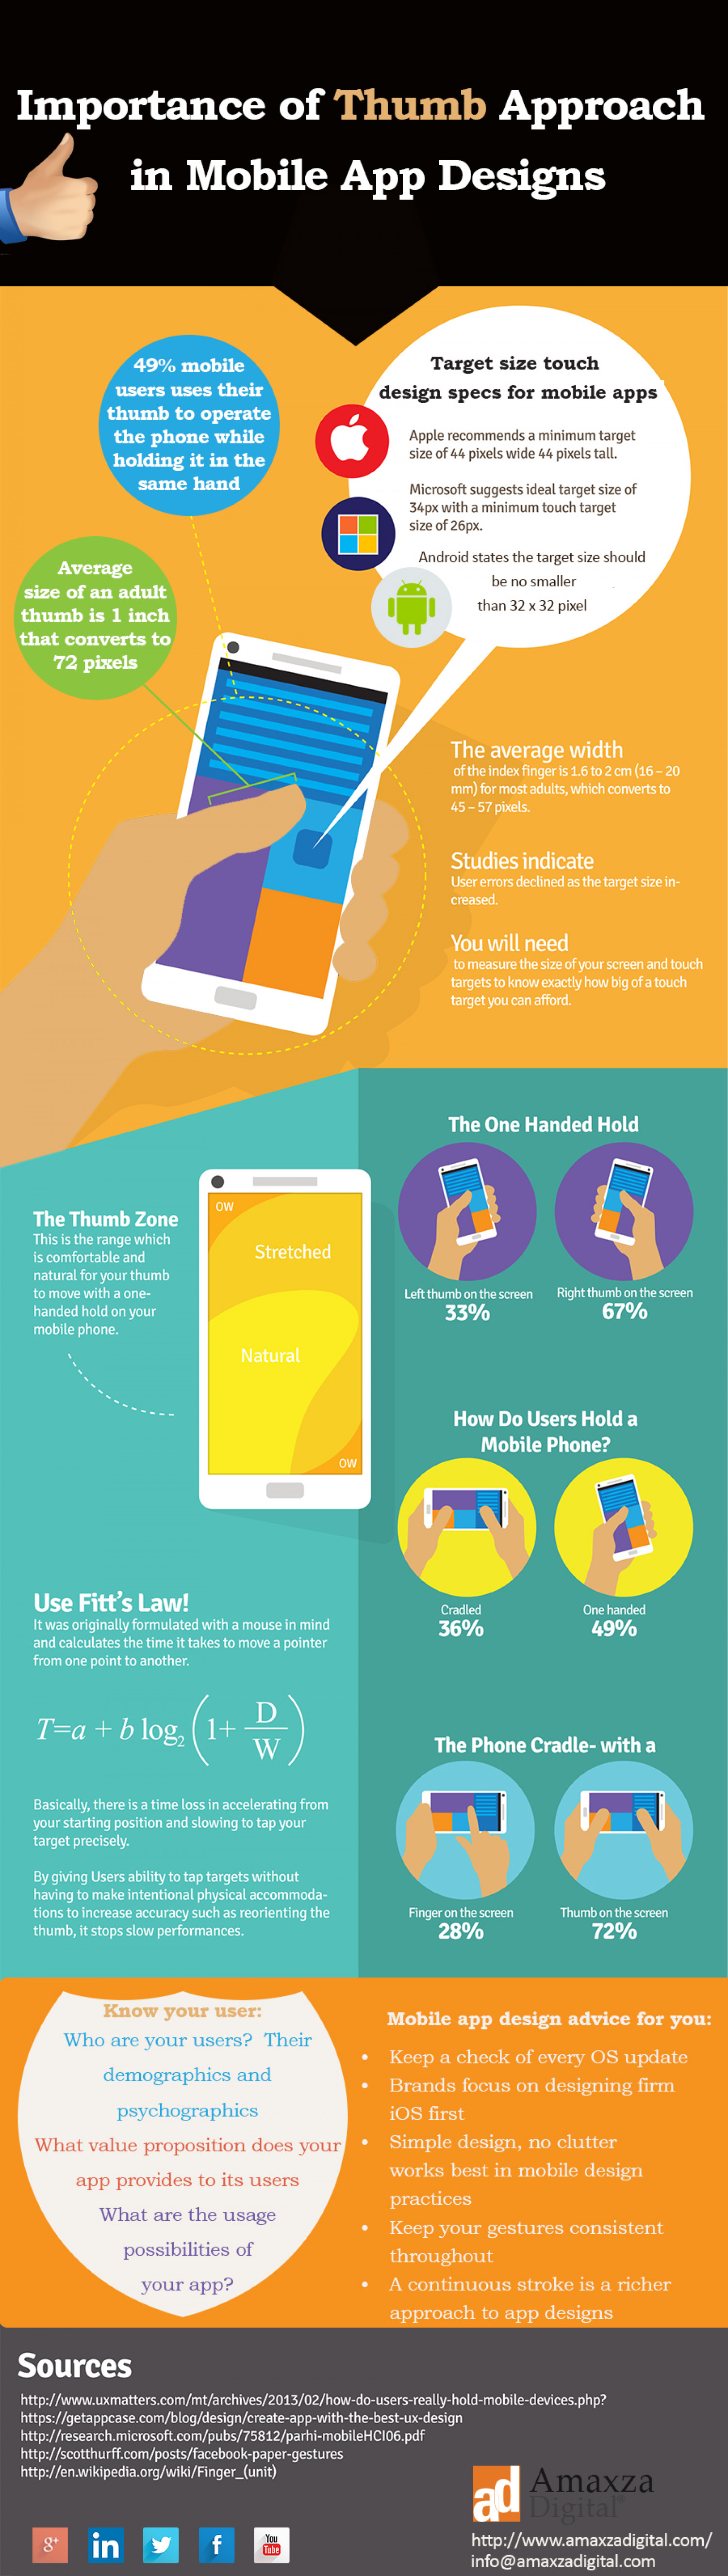 Importance of Thumb Approach in Mobile App Designs Infographic